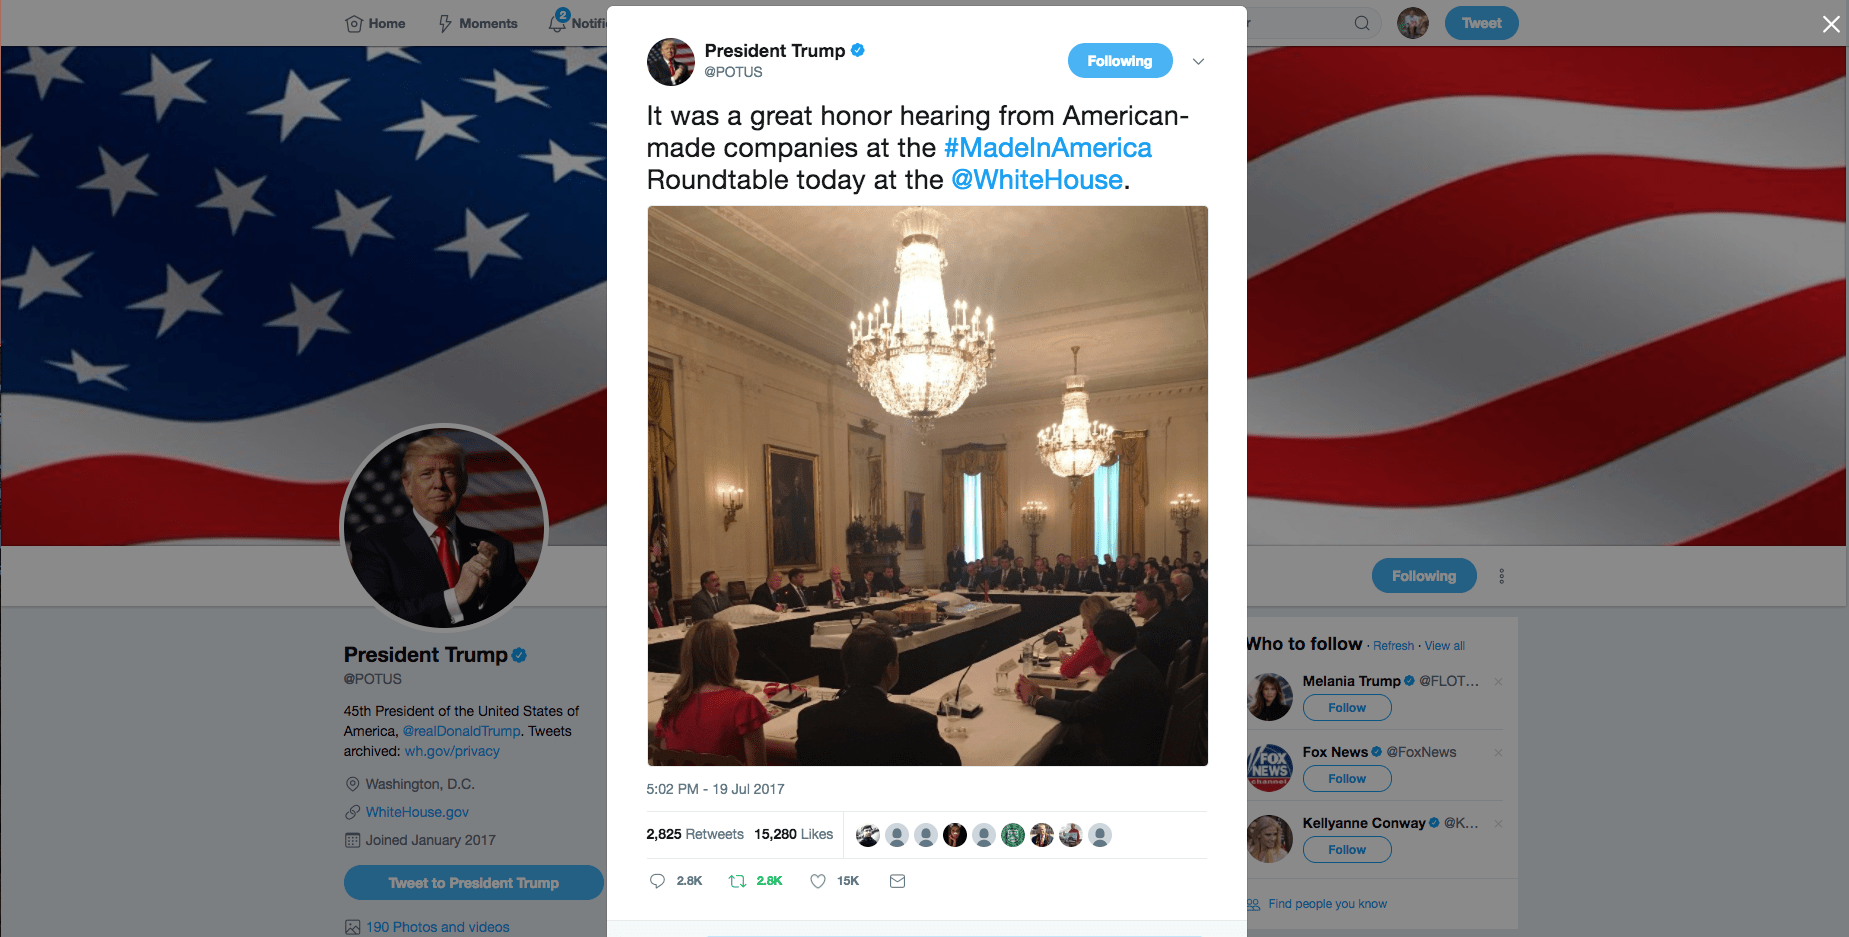 President Trump Tweet - Made in America Roundtable - Margarita Mendoza and Kurt Uhlir 1b